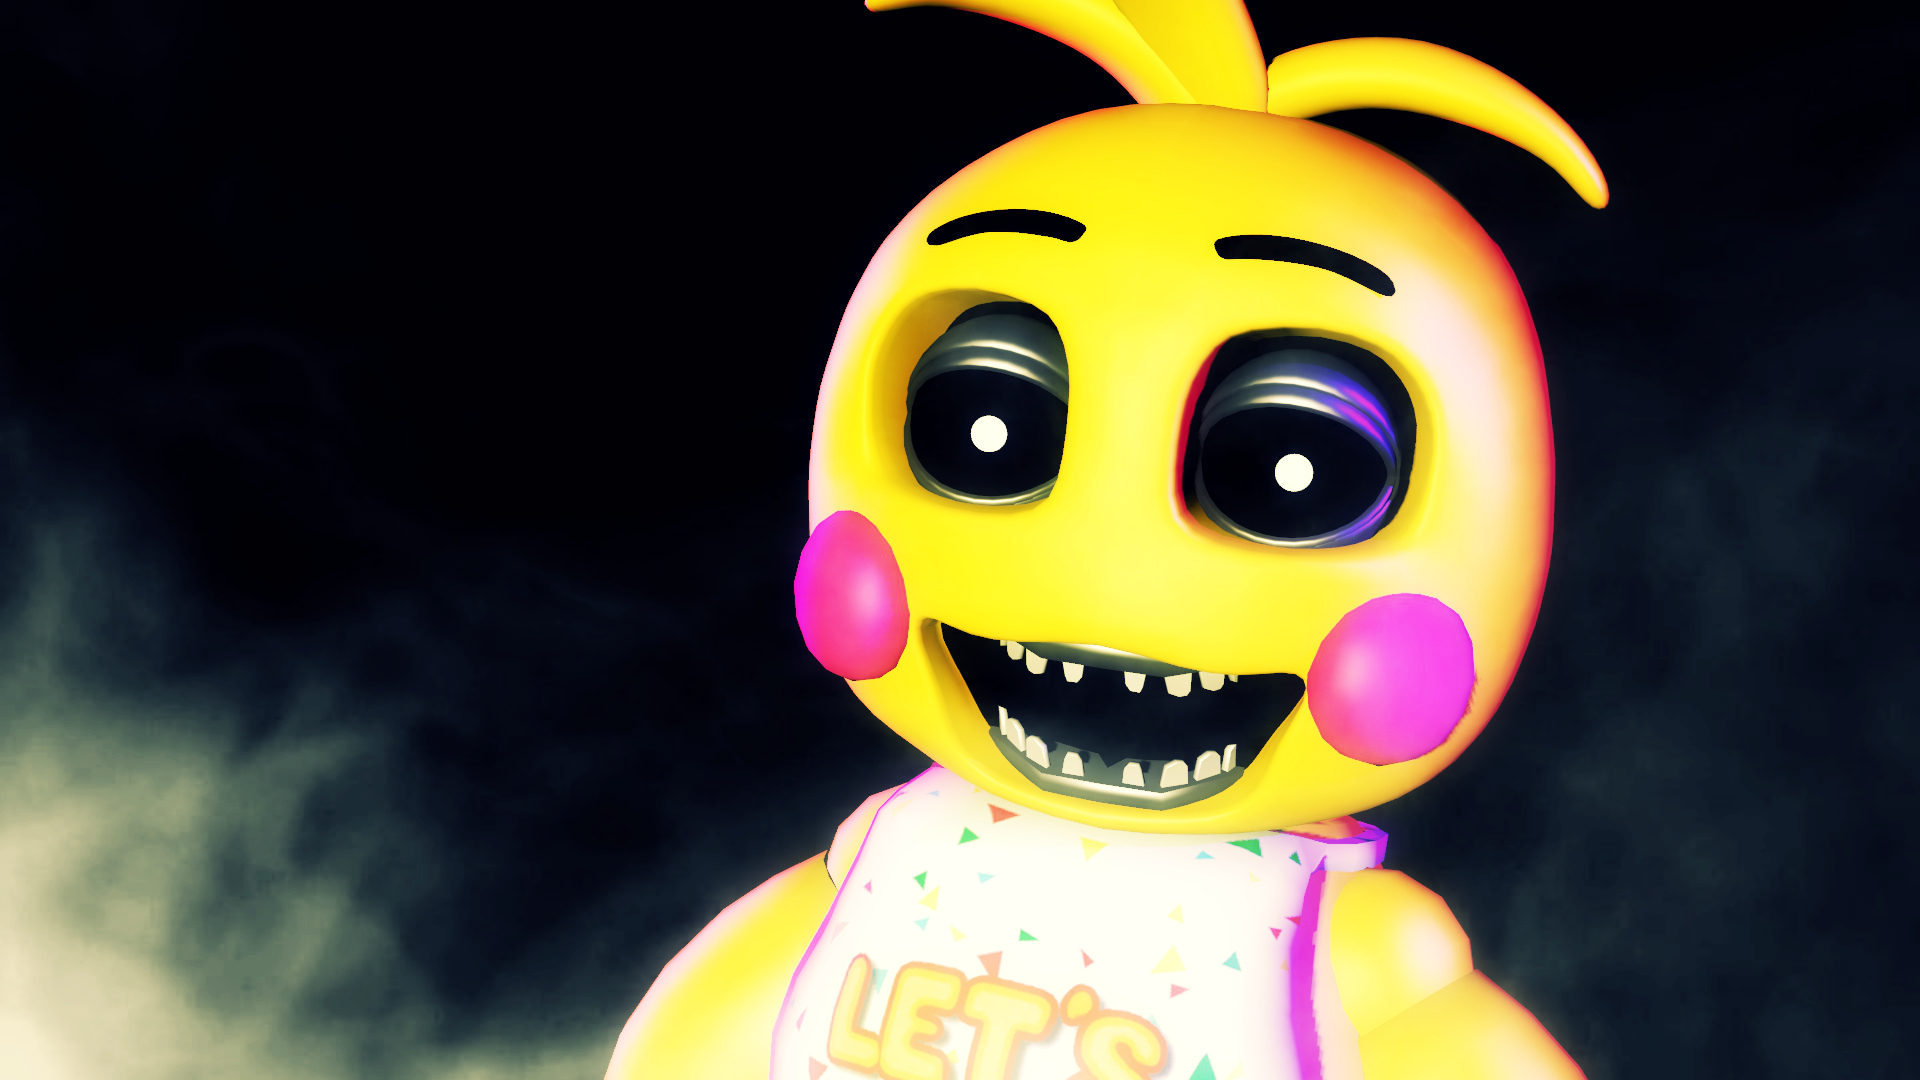 art toy chica wallpaper - photo #16